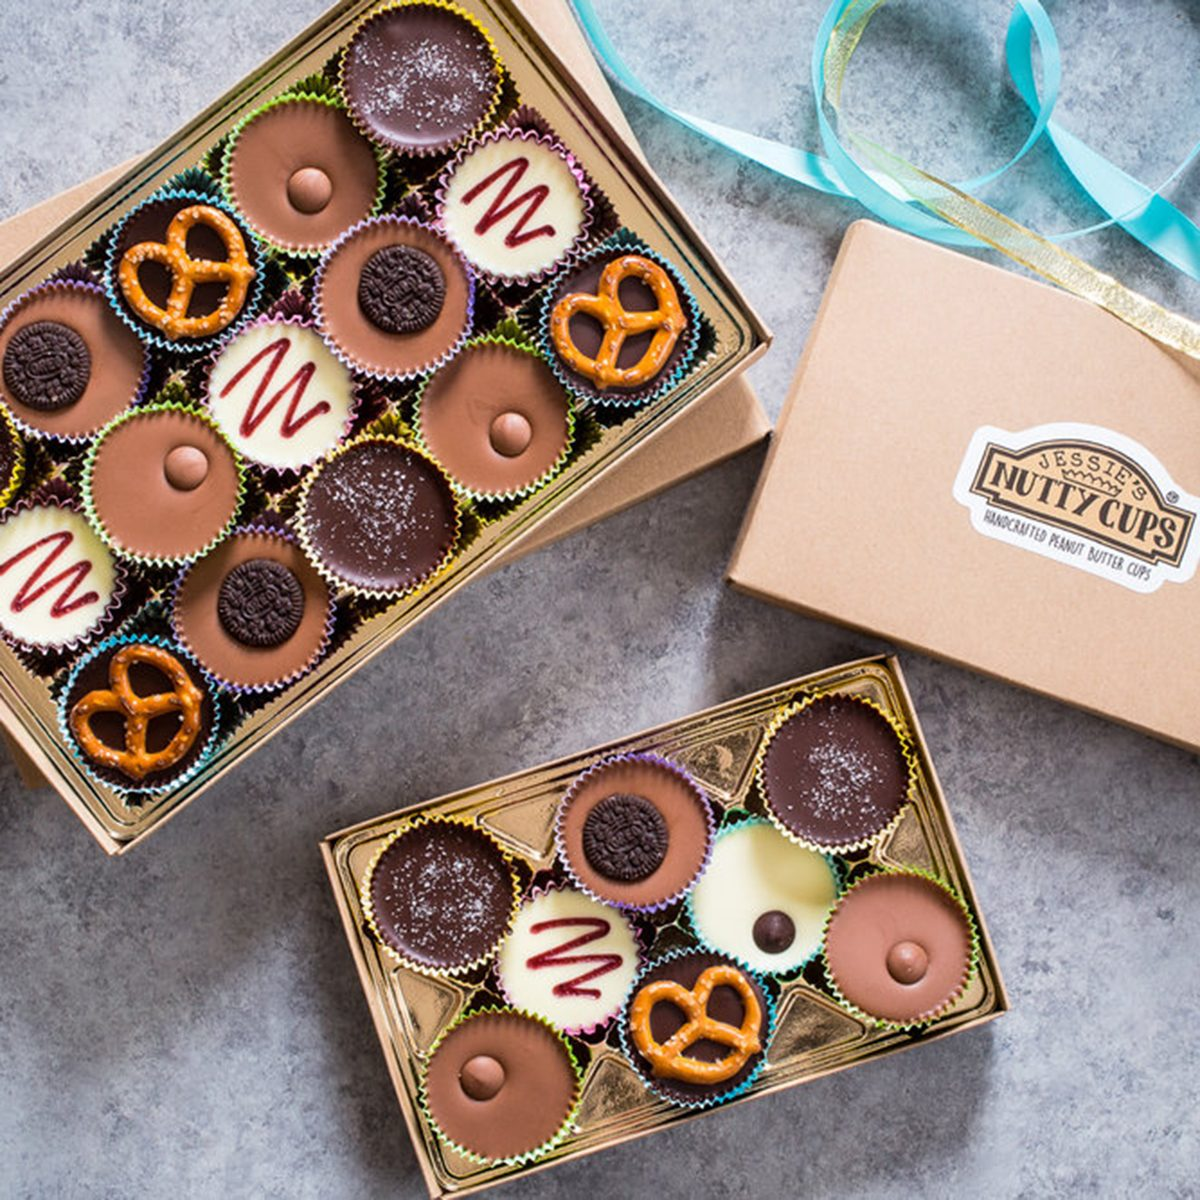 Jessies Nutty Cups Signature Assortment